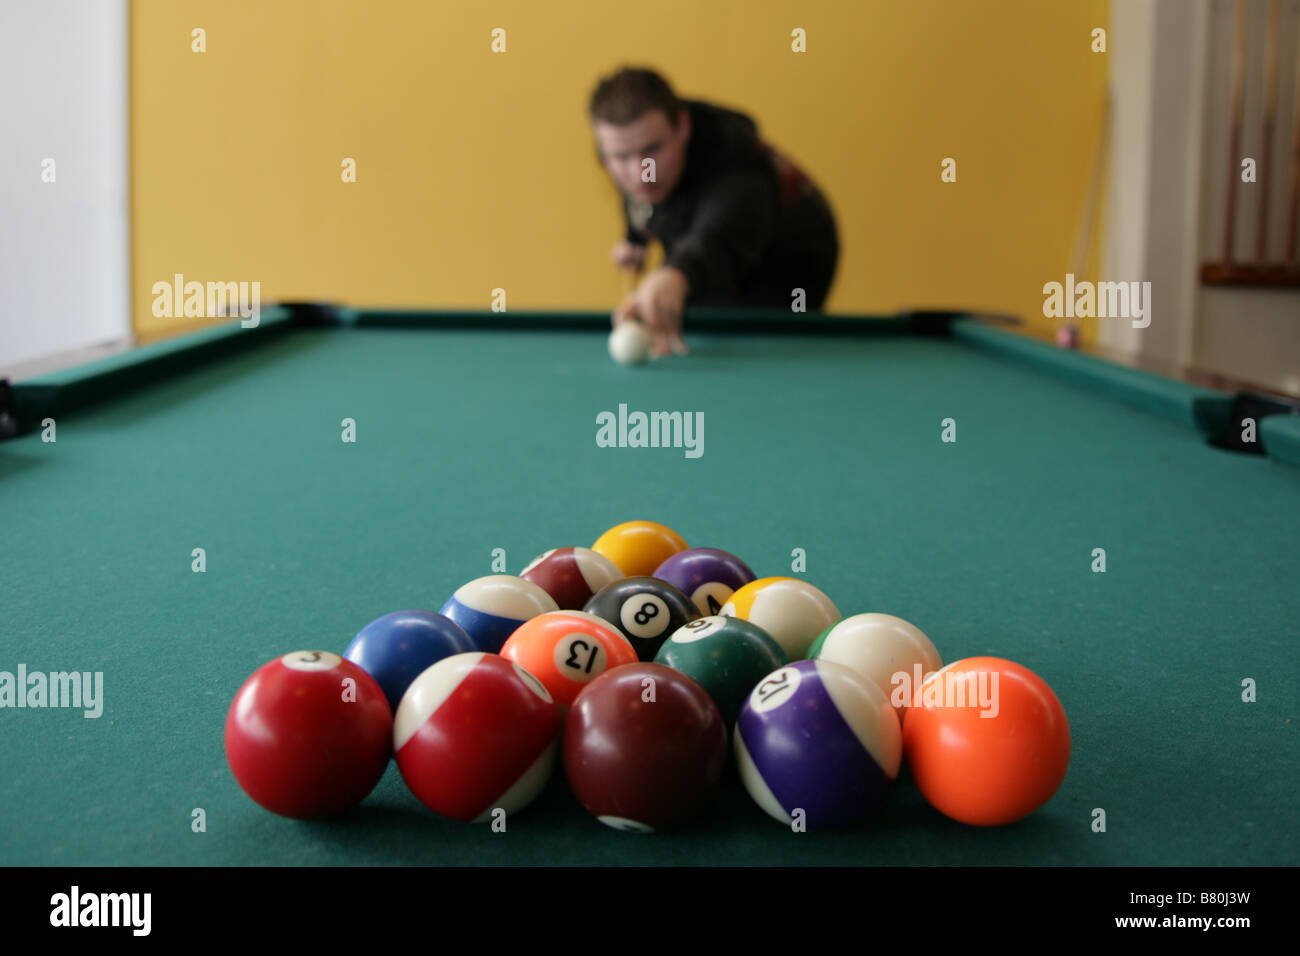 Young man aims cue stick at pool balls. - Stock Image